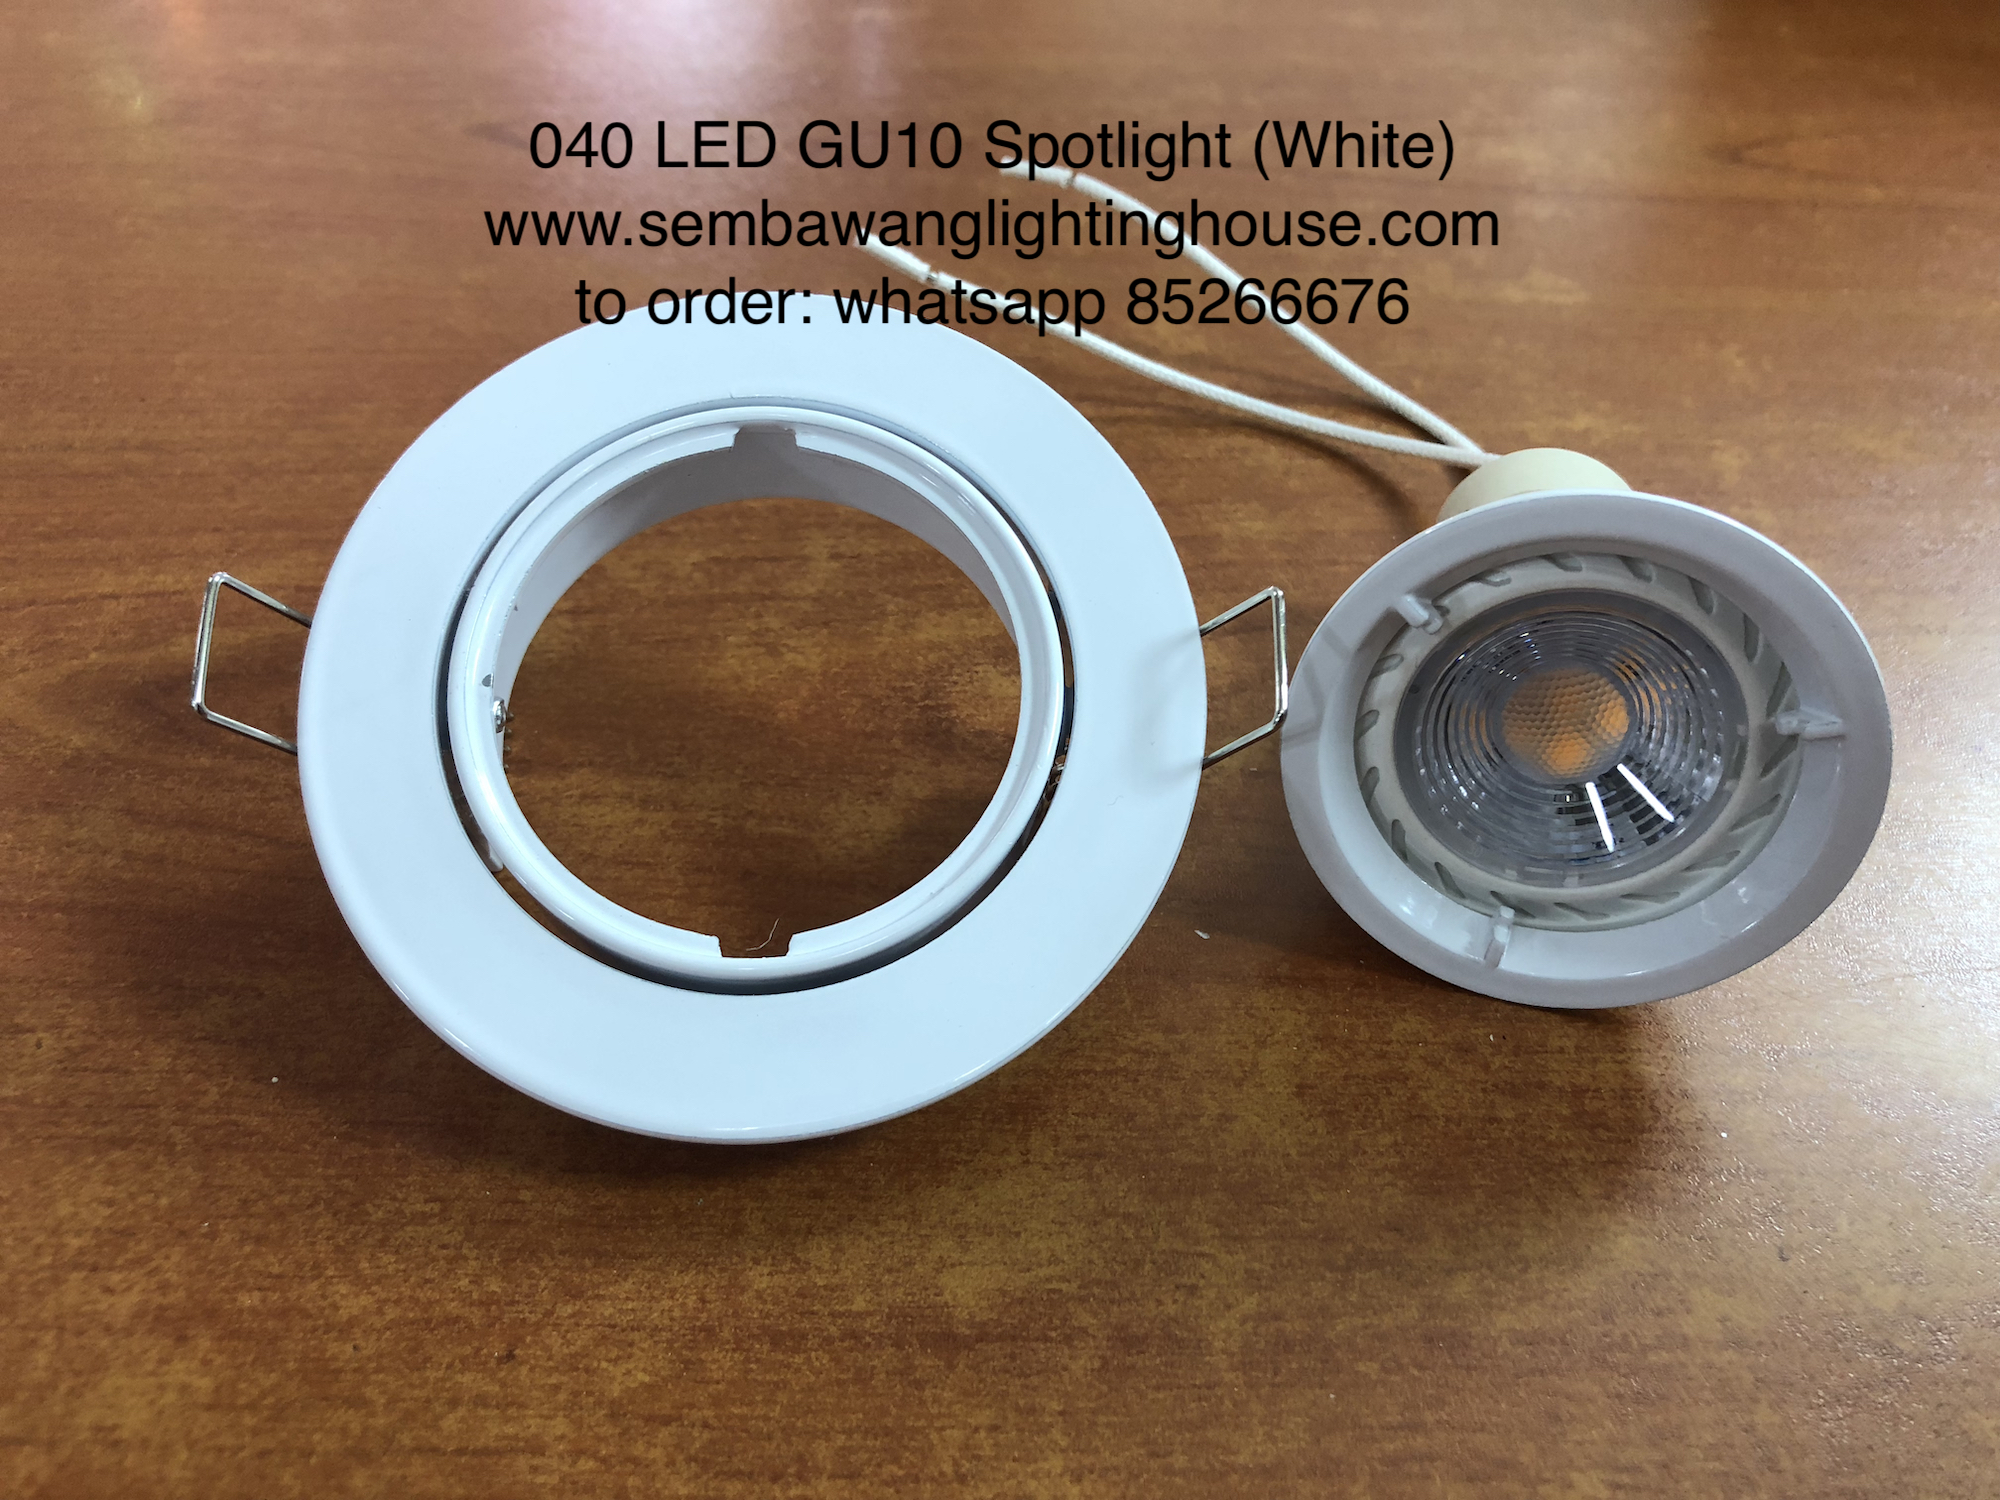 040-wh-led-spotlight-gu10-d.jpg